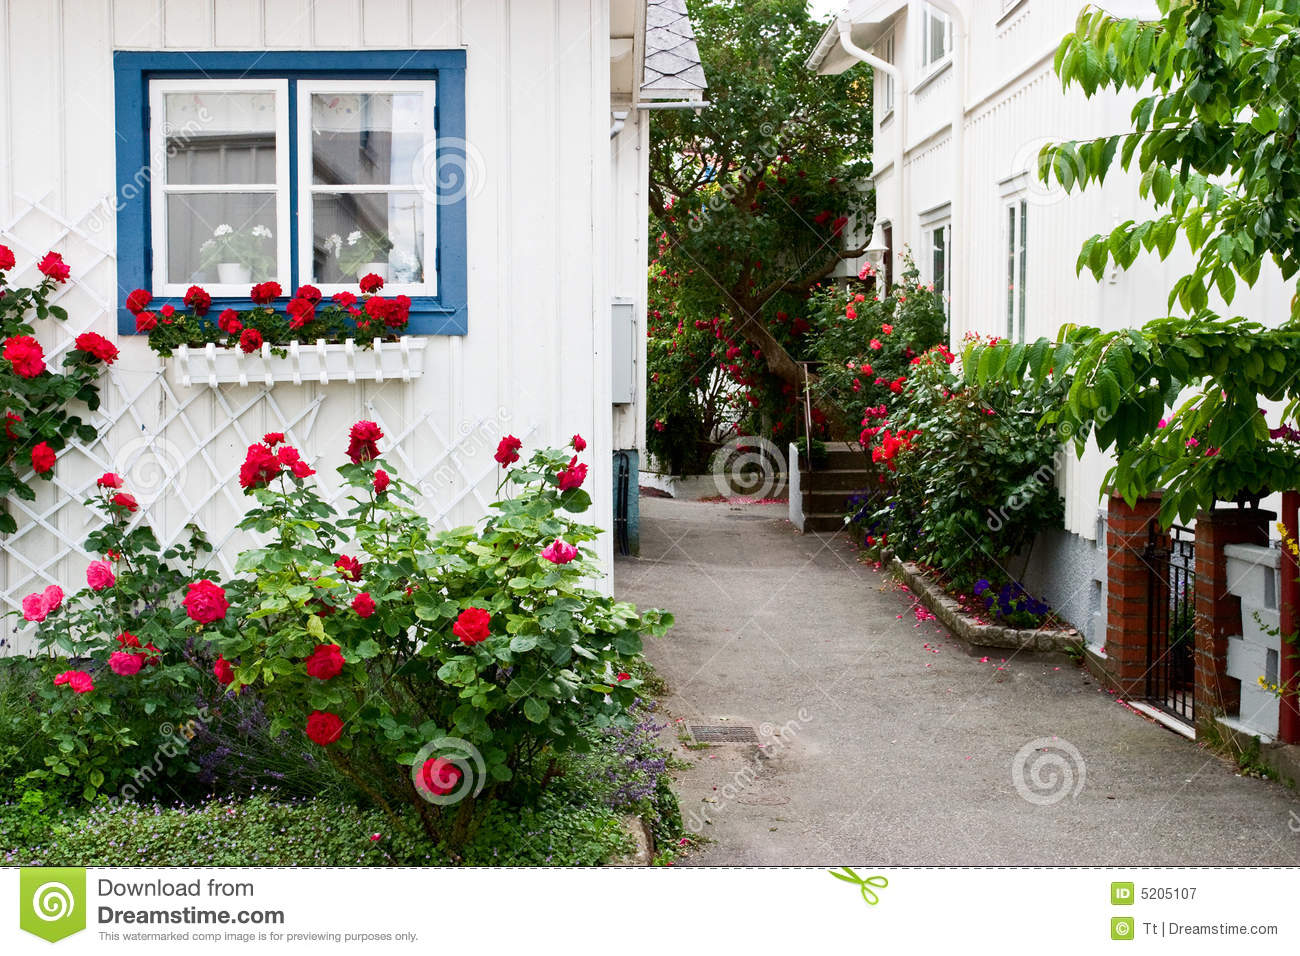 jardins rosas vermelhas : jardins rosas vermelhas:Rose Red House